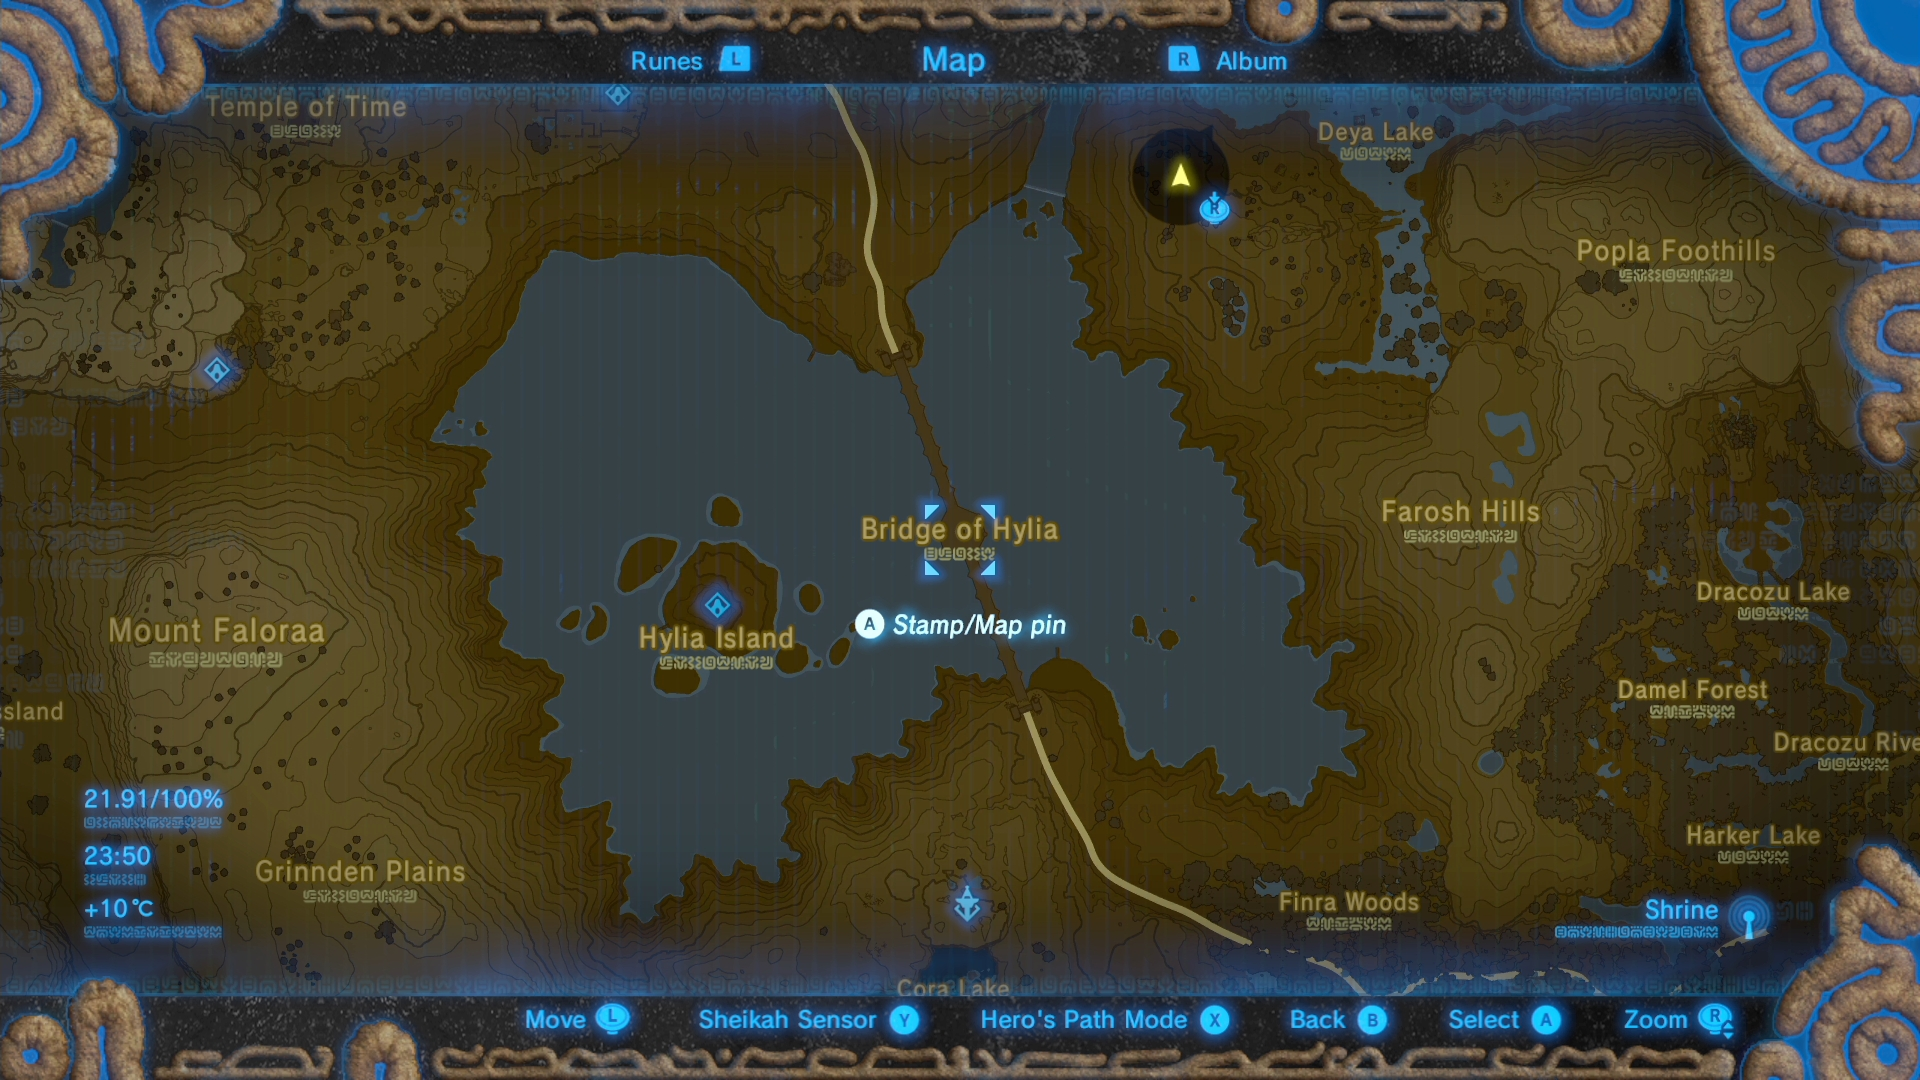 Zelda Botw Shrine Map >> Zelda: Breath of the Wild Xenoblade 2 quest guide: find the shooting stars to get the Salvager ...